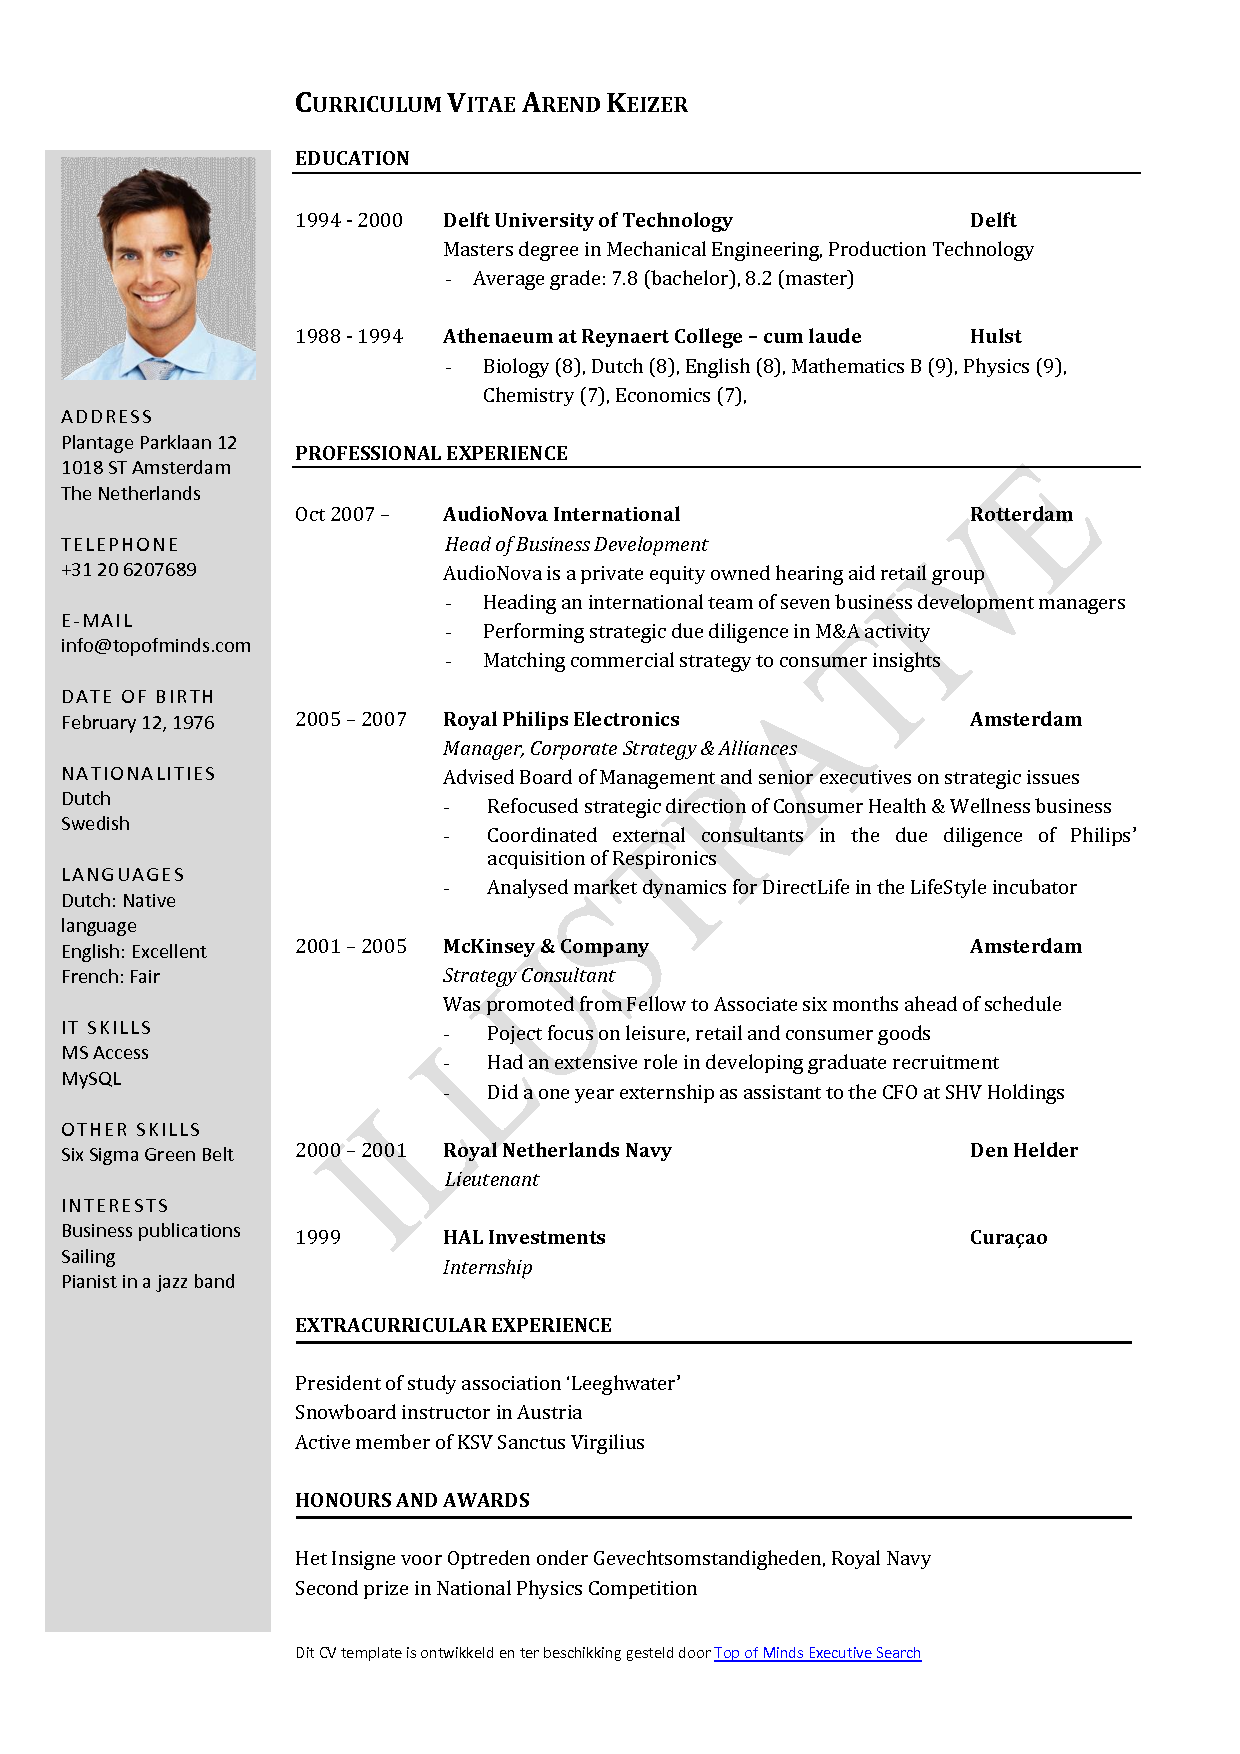 Free curriculum vitae template word download cv template when free curriculum vitae template word download cv template when english cv how to write cv in altavistaventures Images